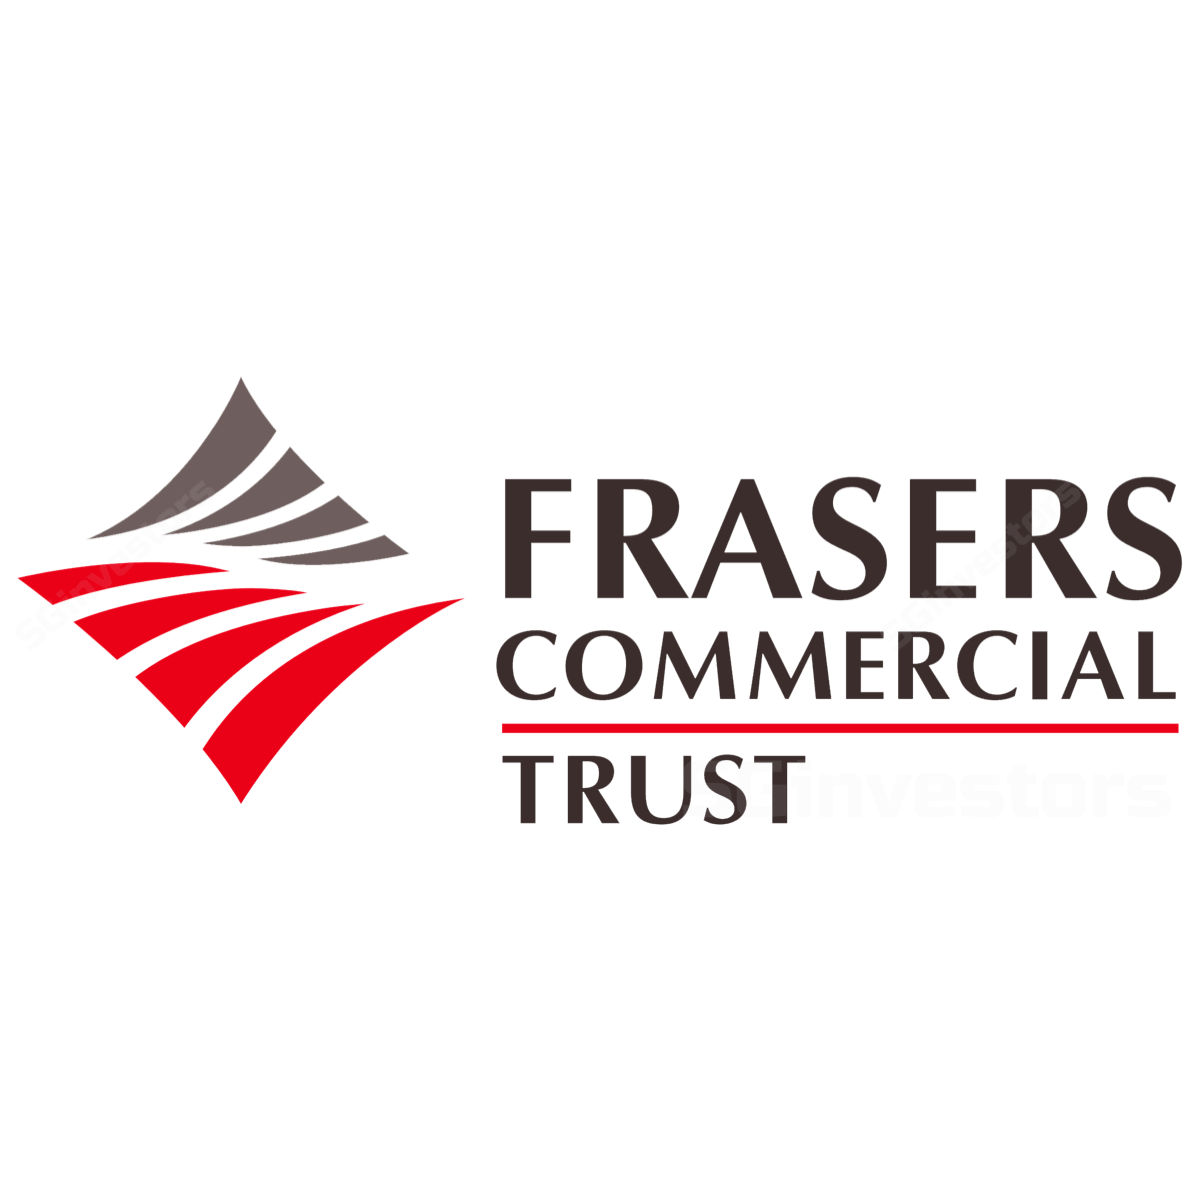 Frasers Commercial Trust - RHB Invest 2017-04-24: 2QFY17 Results Flash Note ~ Decent results despite challenges.